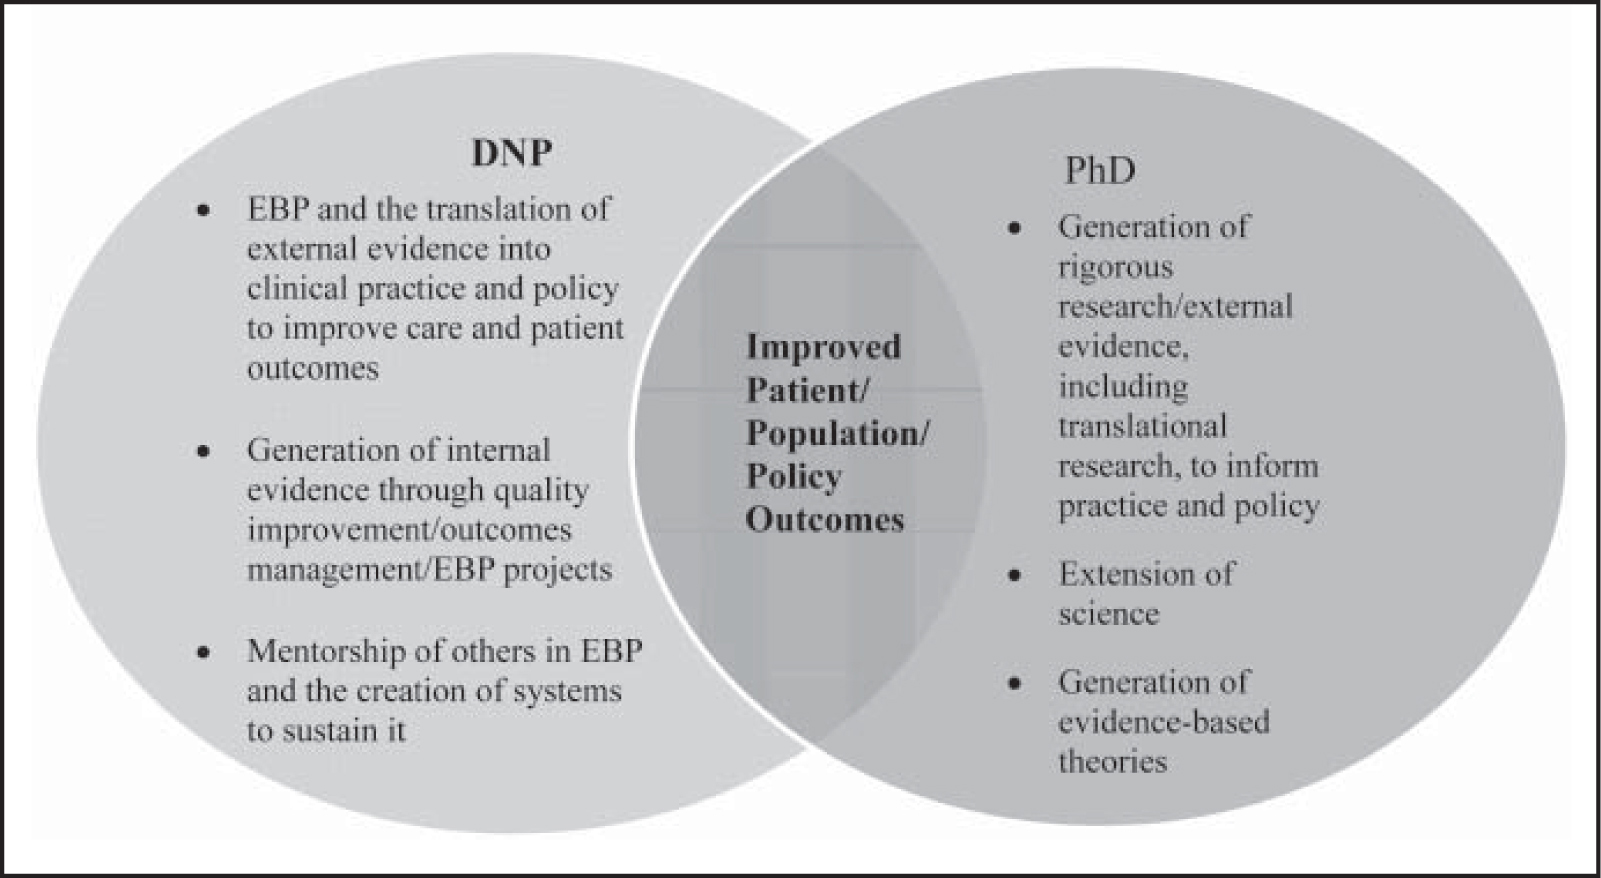 role of nursing research and evidence Evidence-based practice (ebp) is widely recognised within the role of nursing its implementation and purpose in the delivery of care is seen as an important driver for nursing practice and clinical outcomes (cullen & adams 2010.